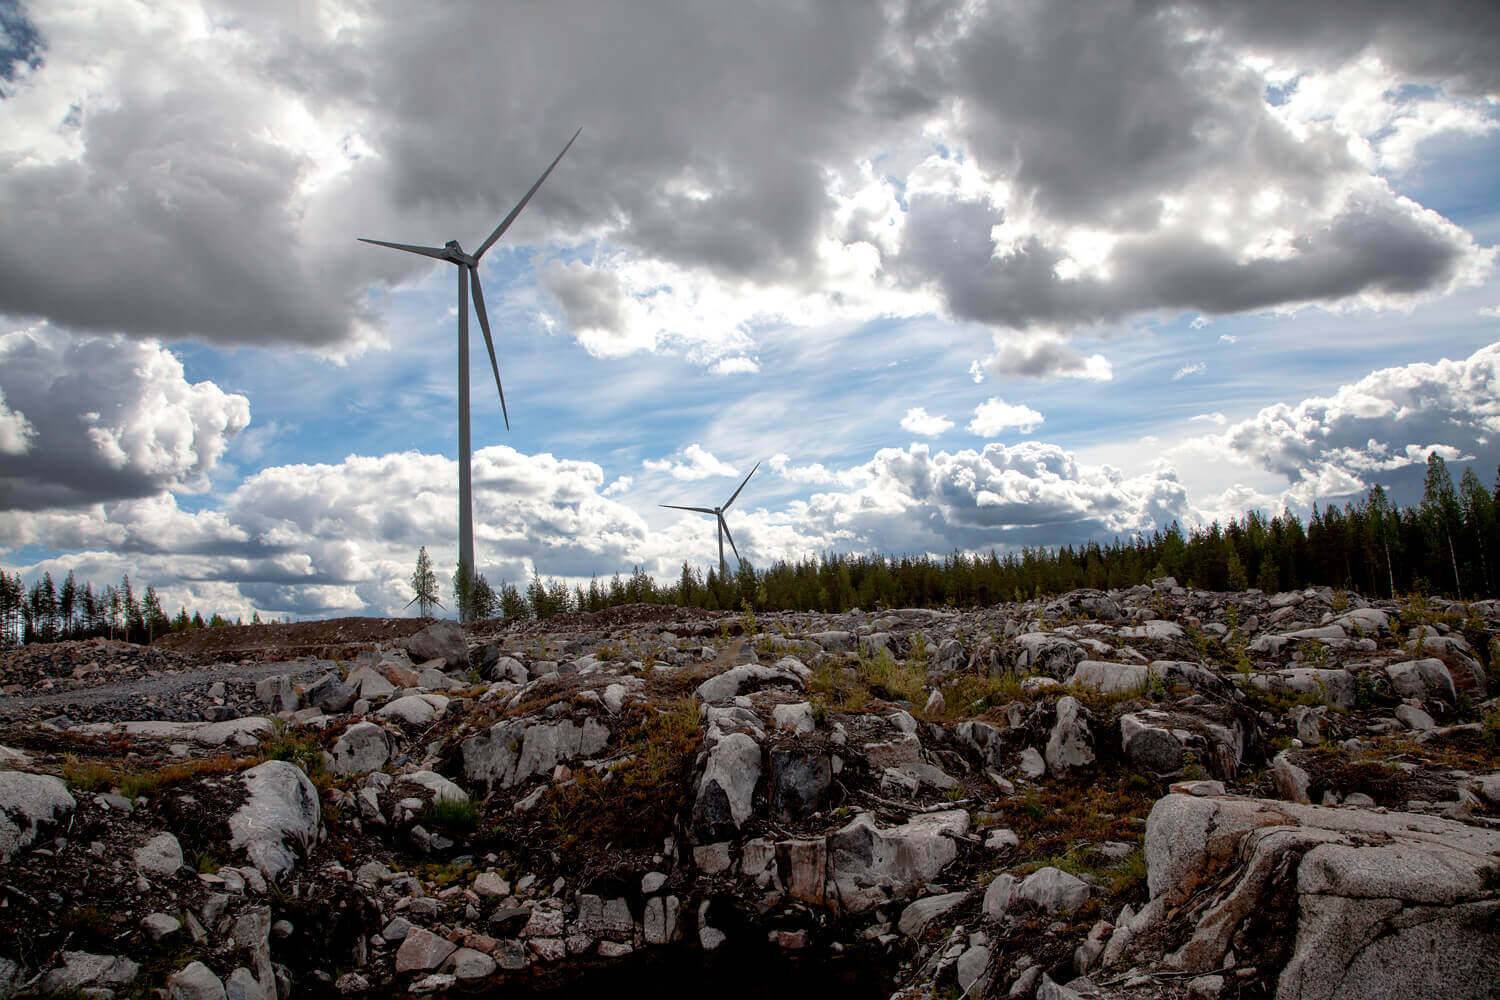 Vestas wins turbine order for subsidy-free wind farm in Finland